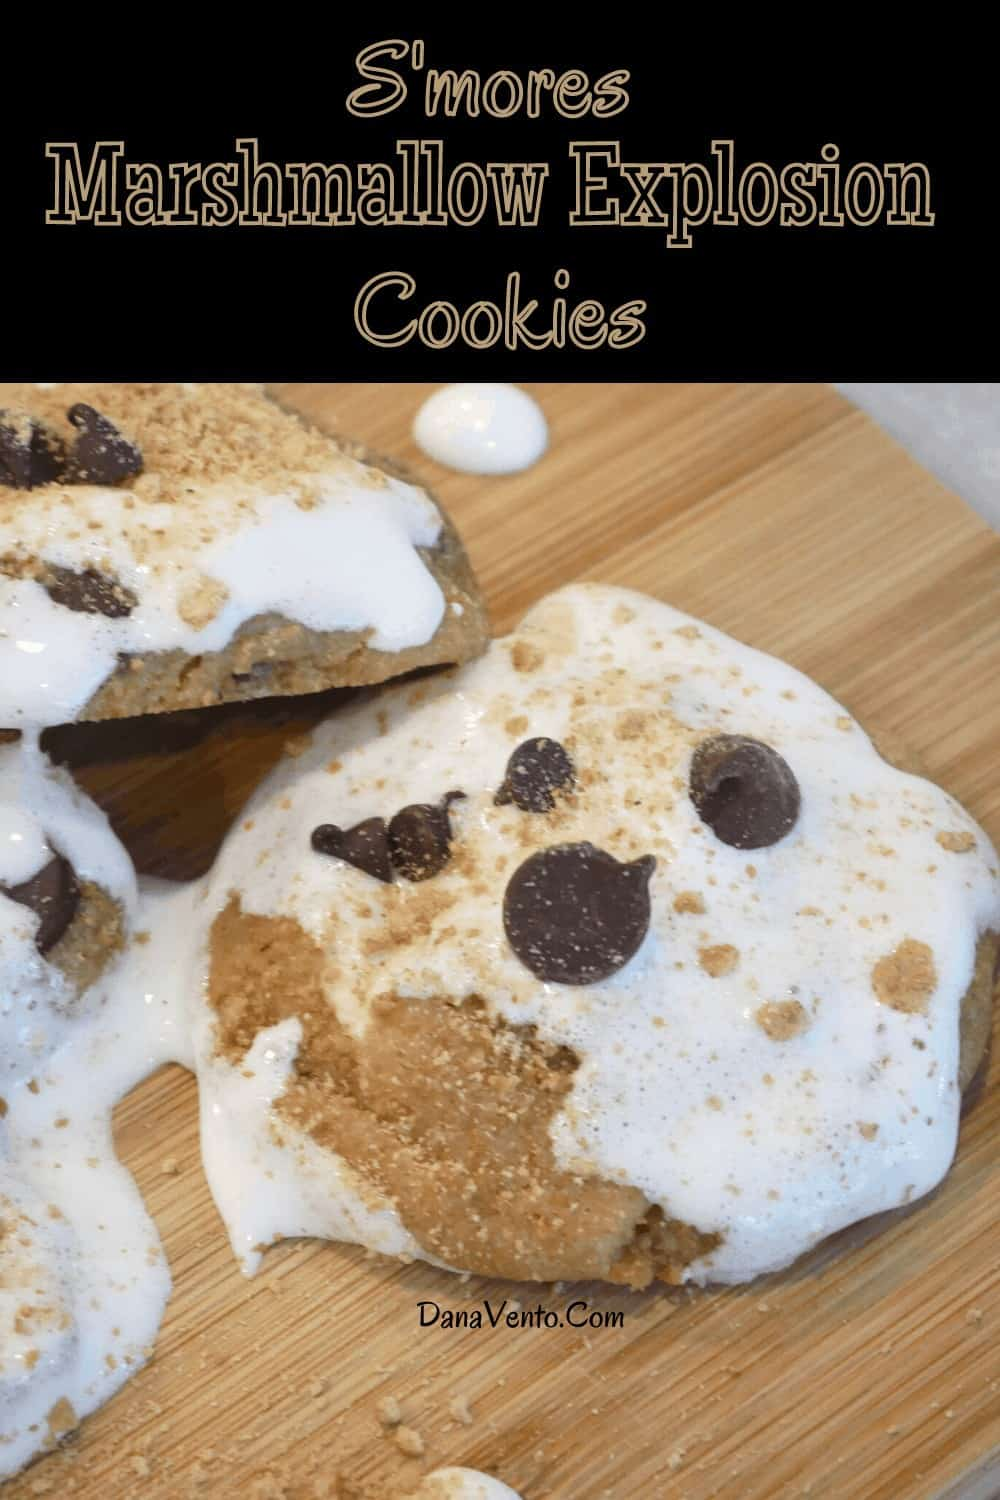 S'mores Marshmallow Explosion Cookies up close to see icing